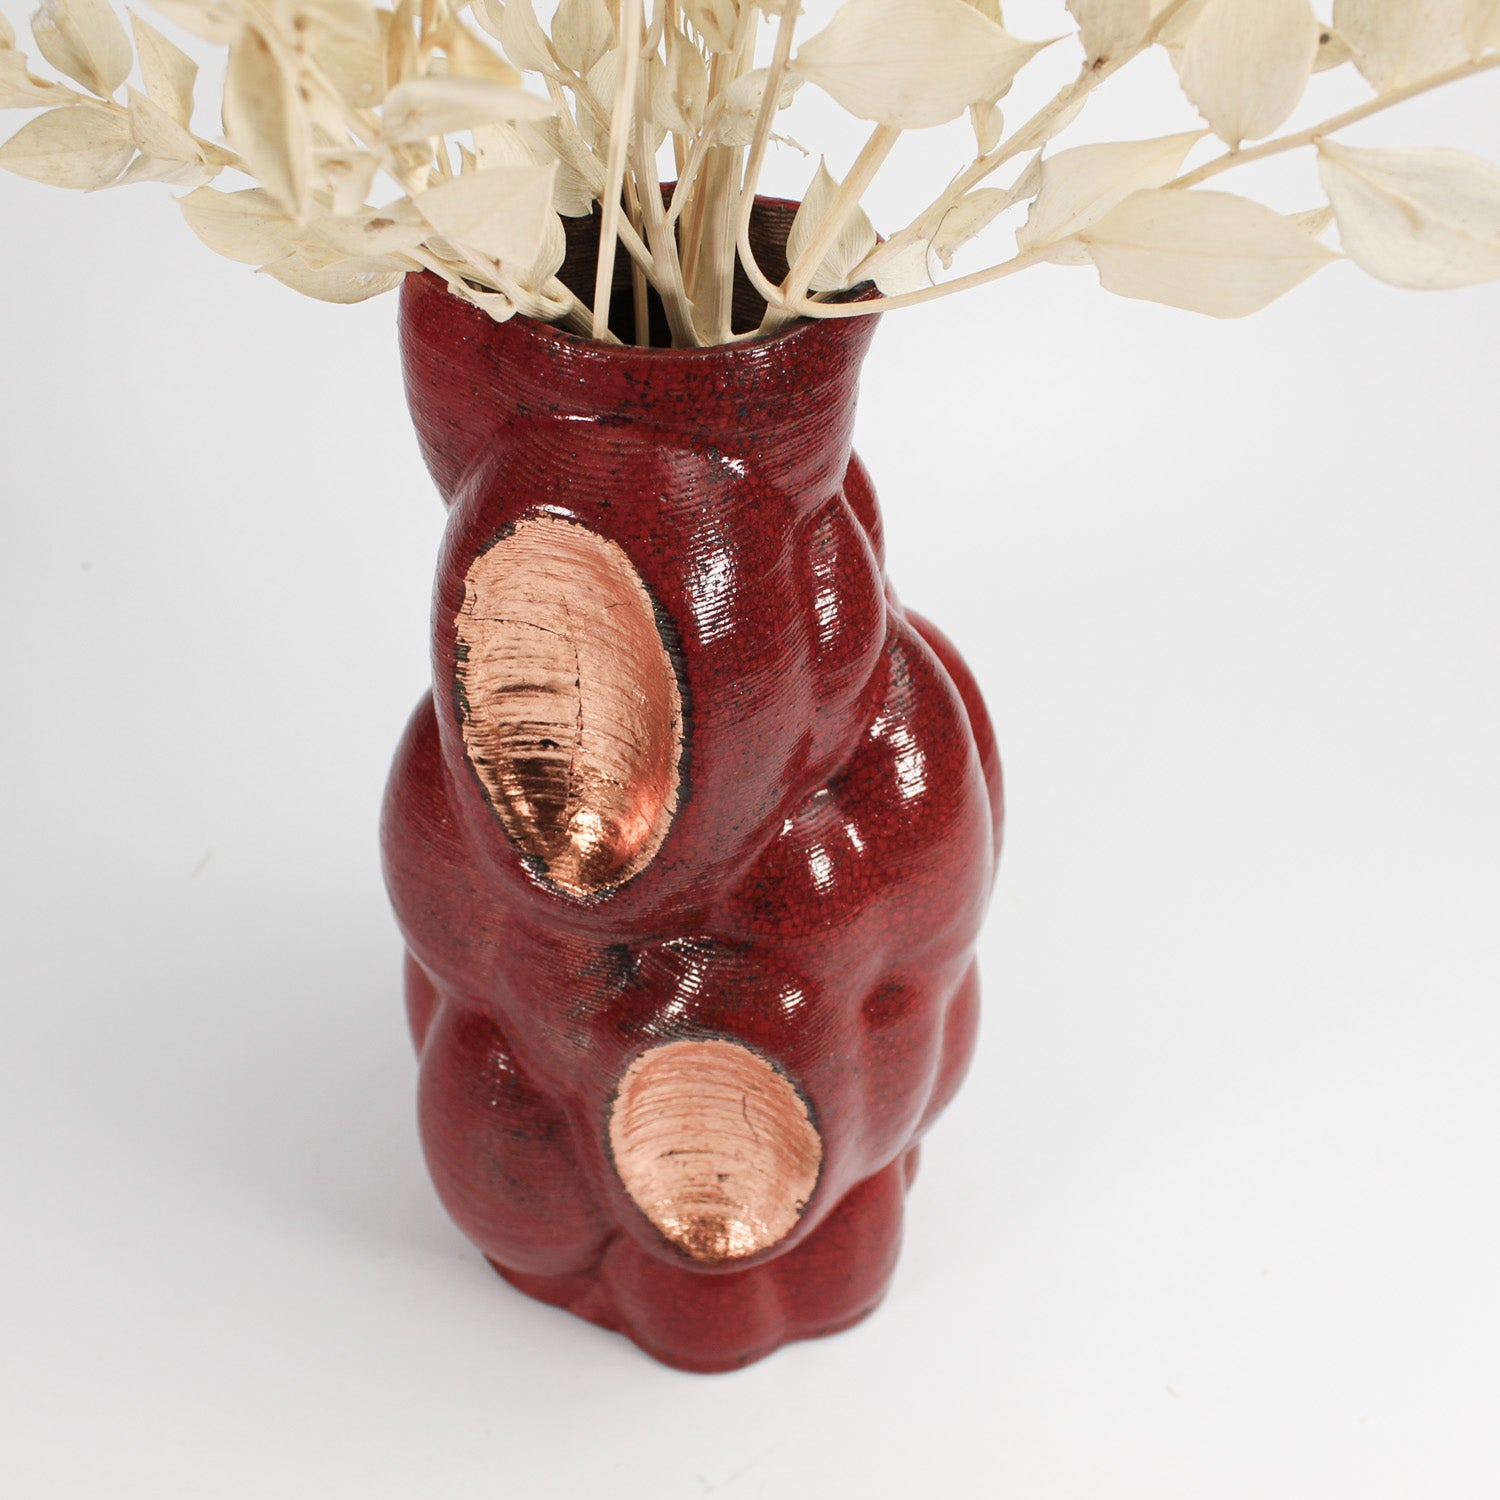 3D printed pottery red and gold vase with dried flowers in